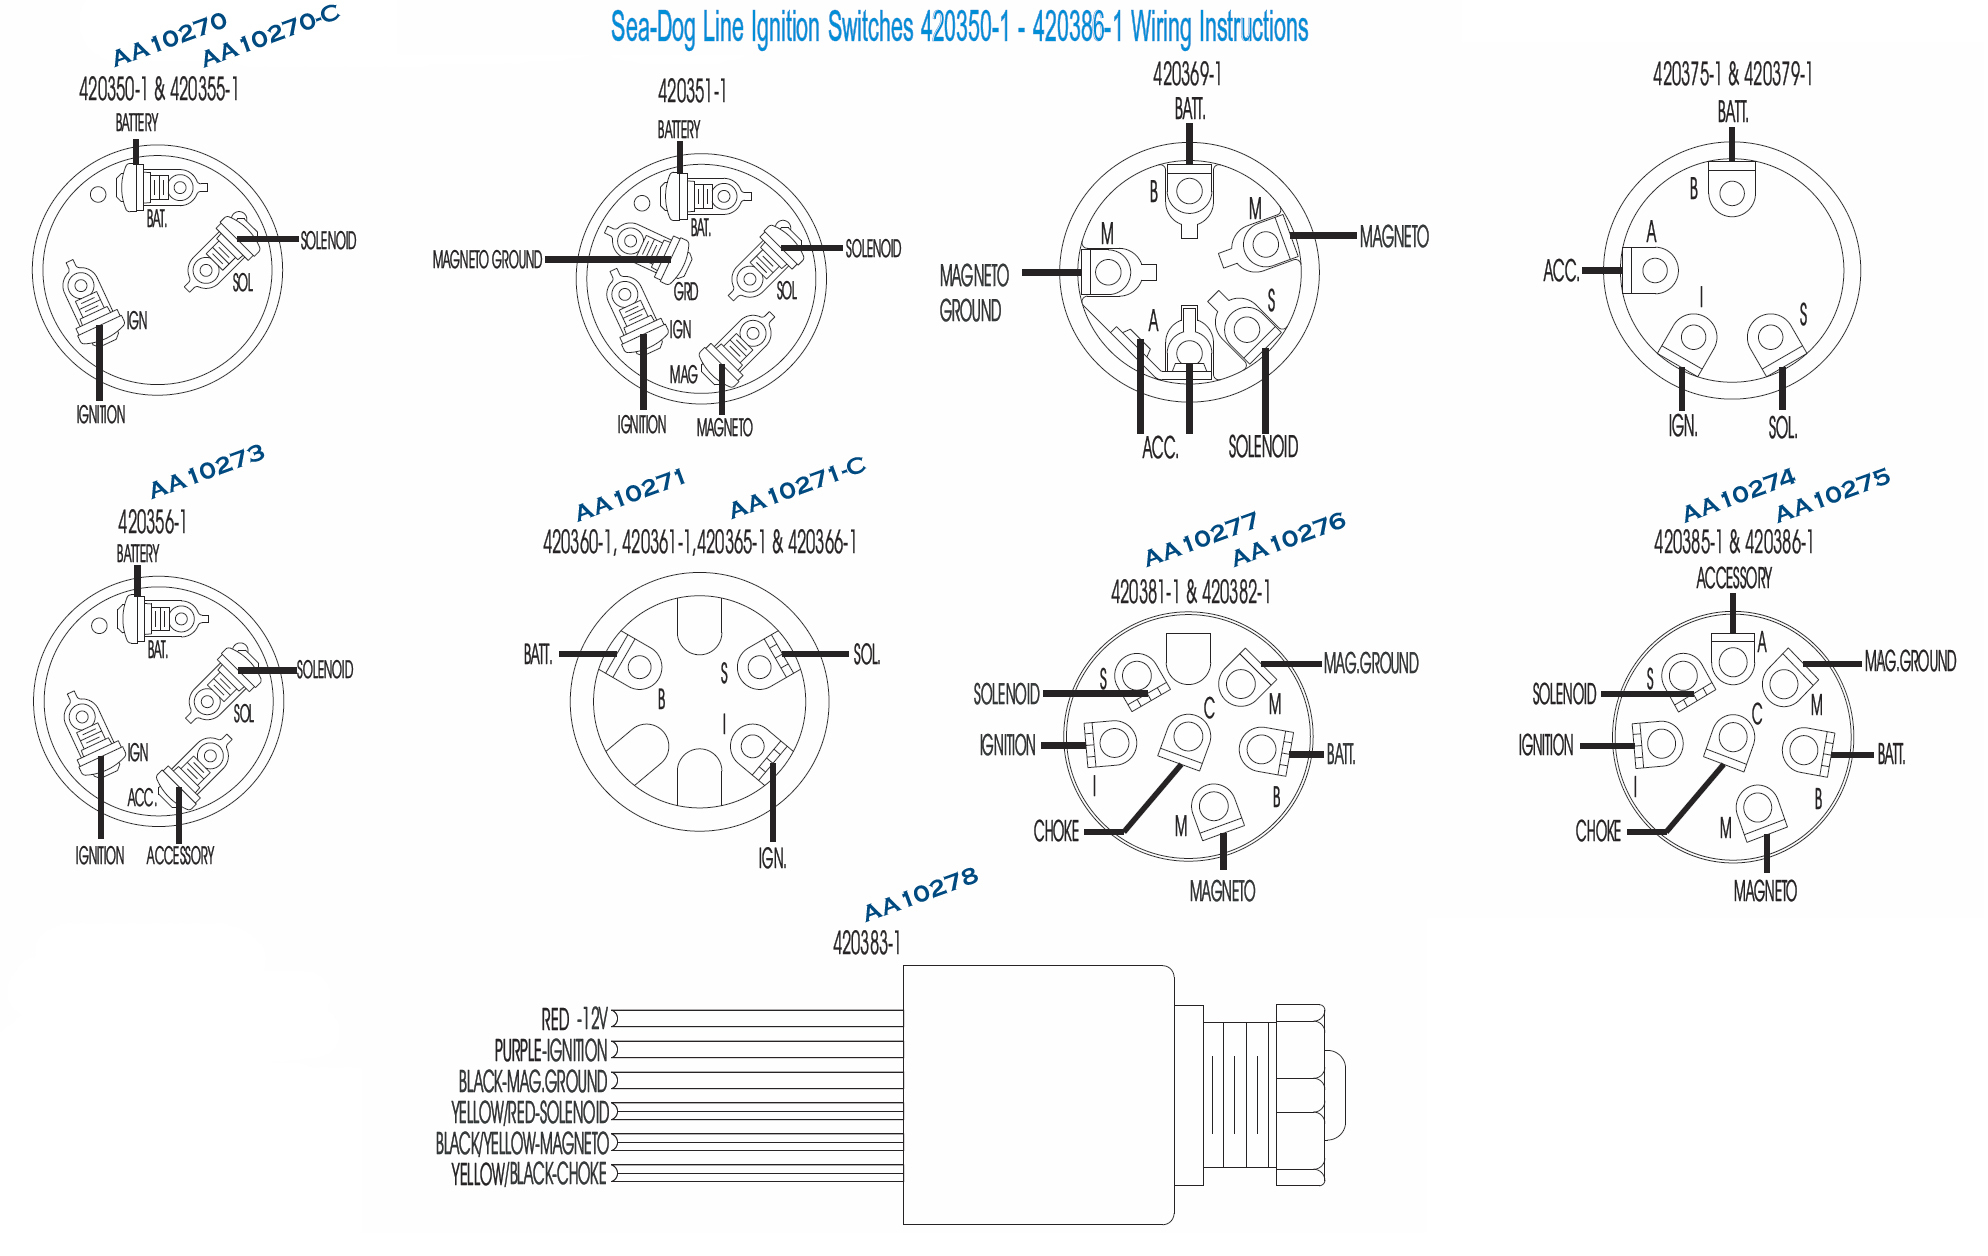 6 Pole Ignition Switch Wiring Diagram from annawiringdiagram.com